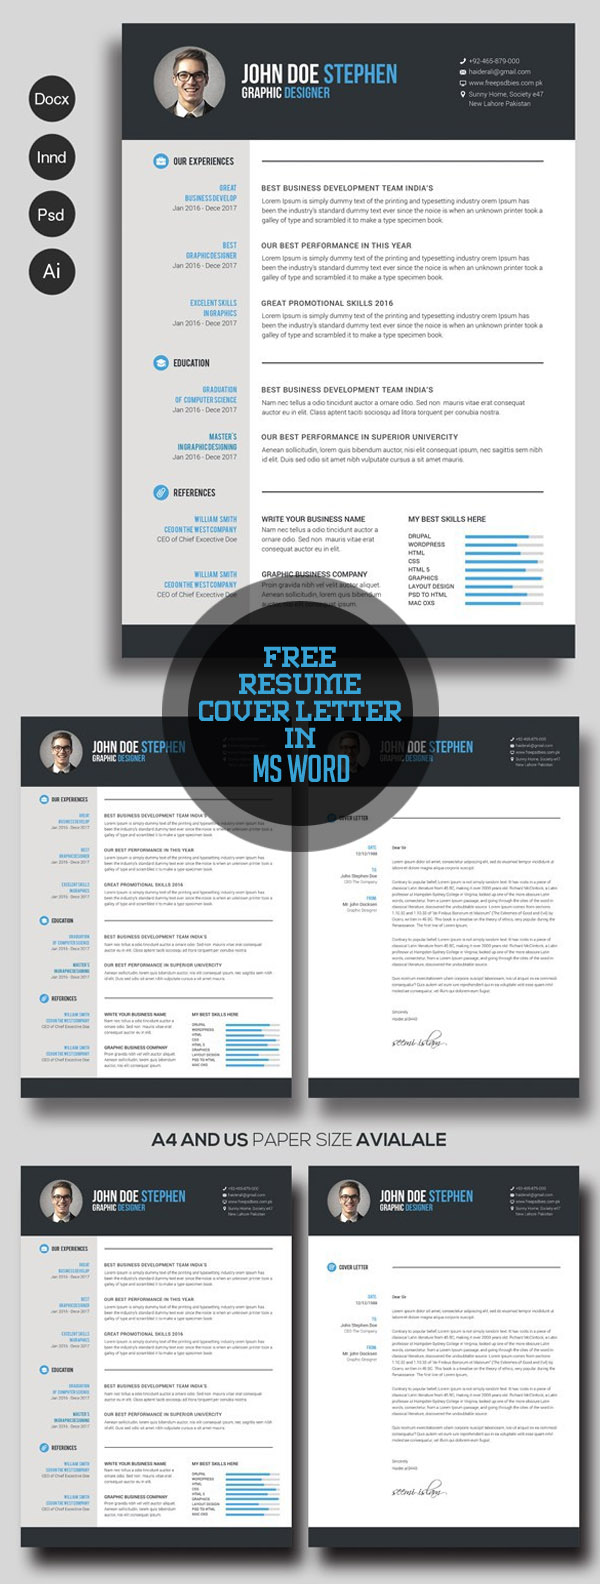 free resume cover letter in ms word - 2017 Resume Templates Word